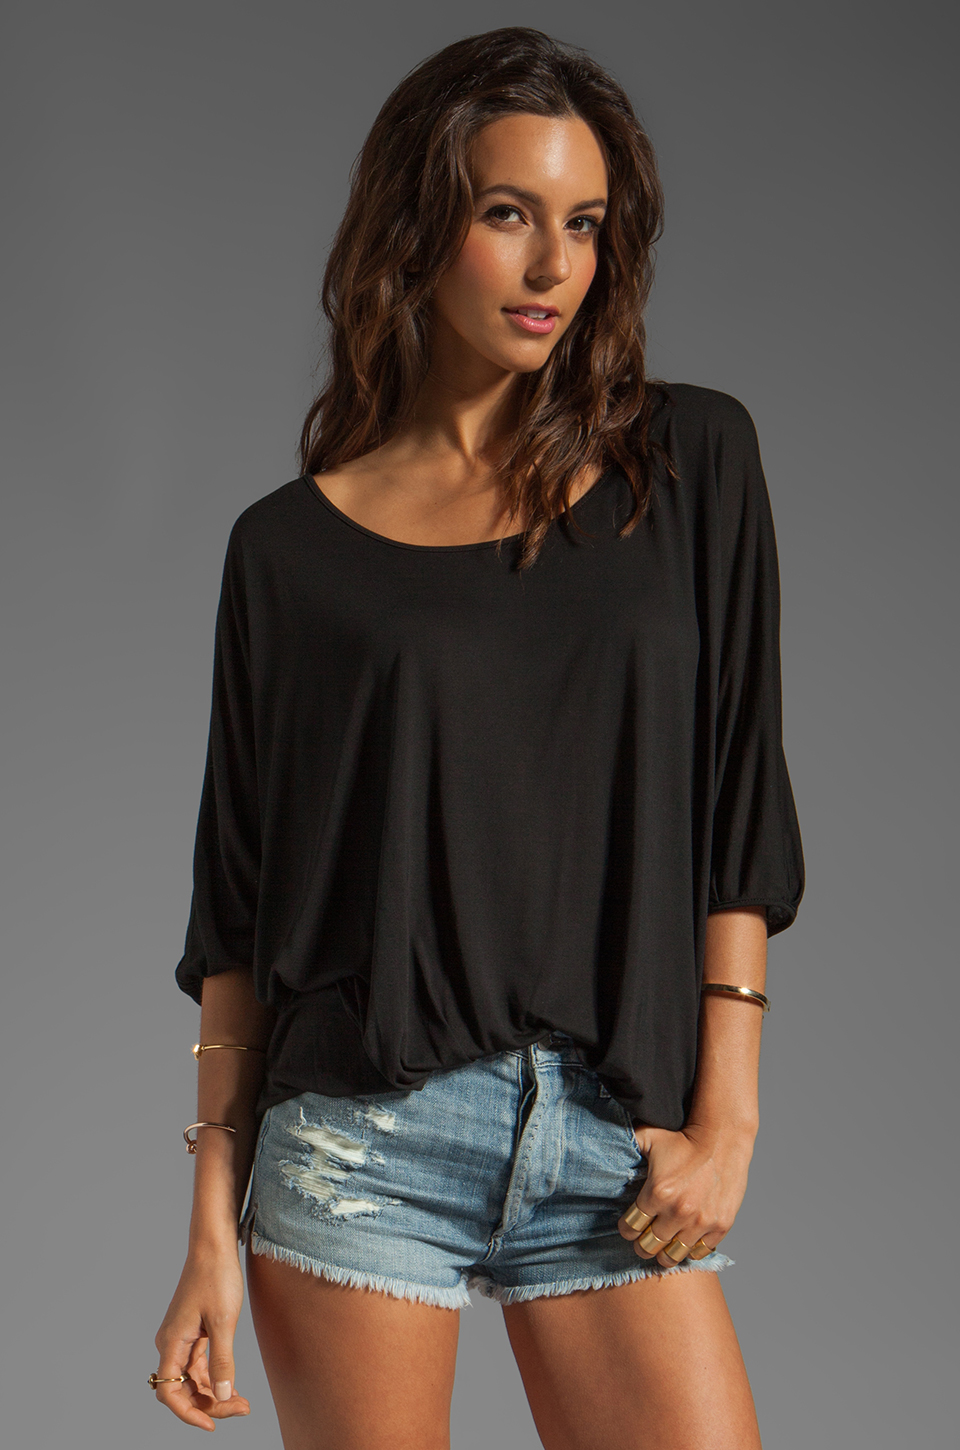 Lanston Pleated Top in Black